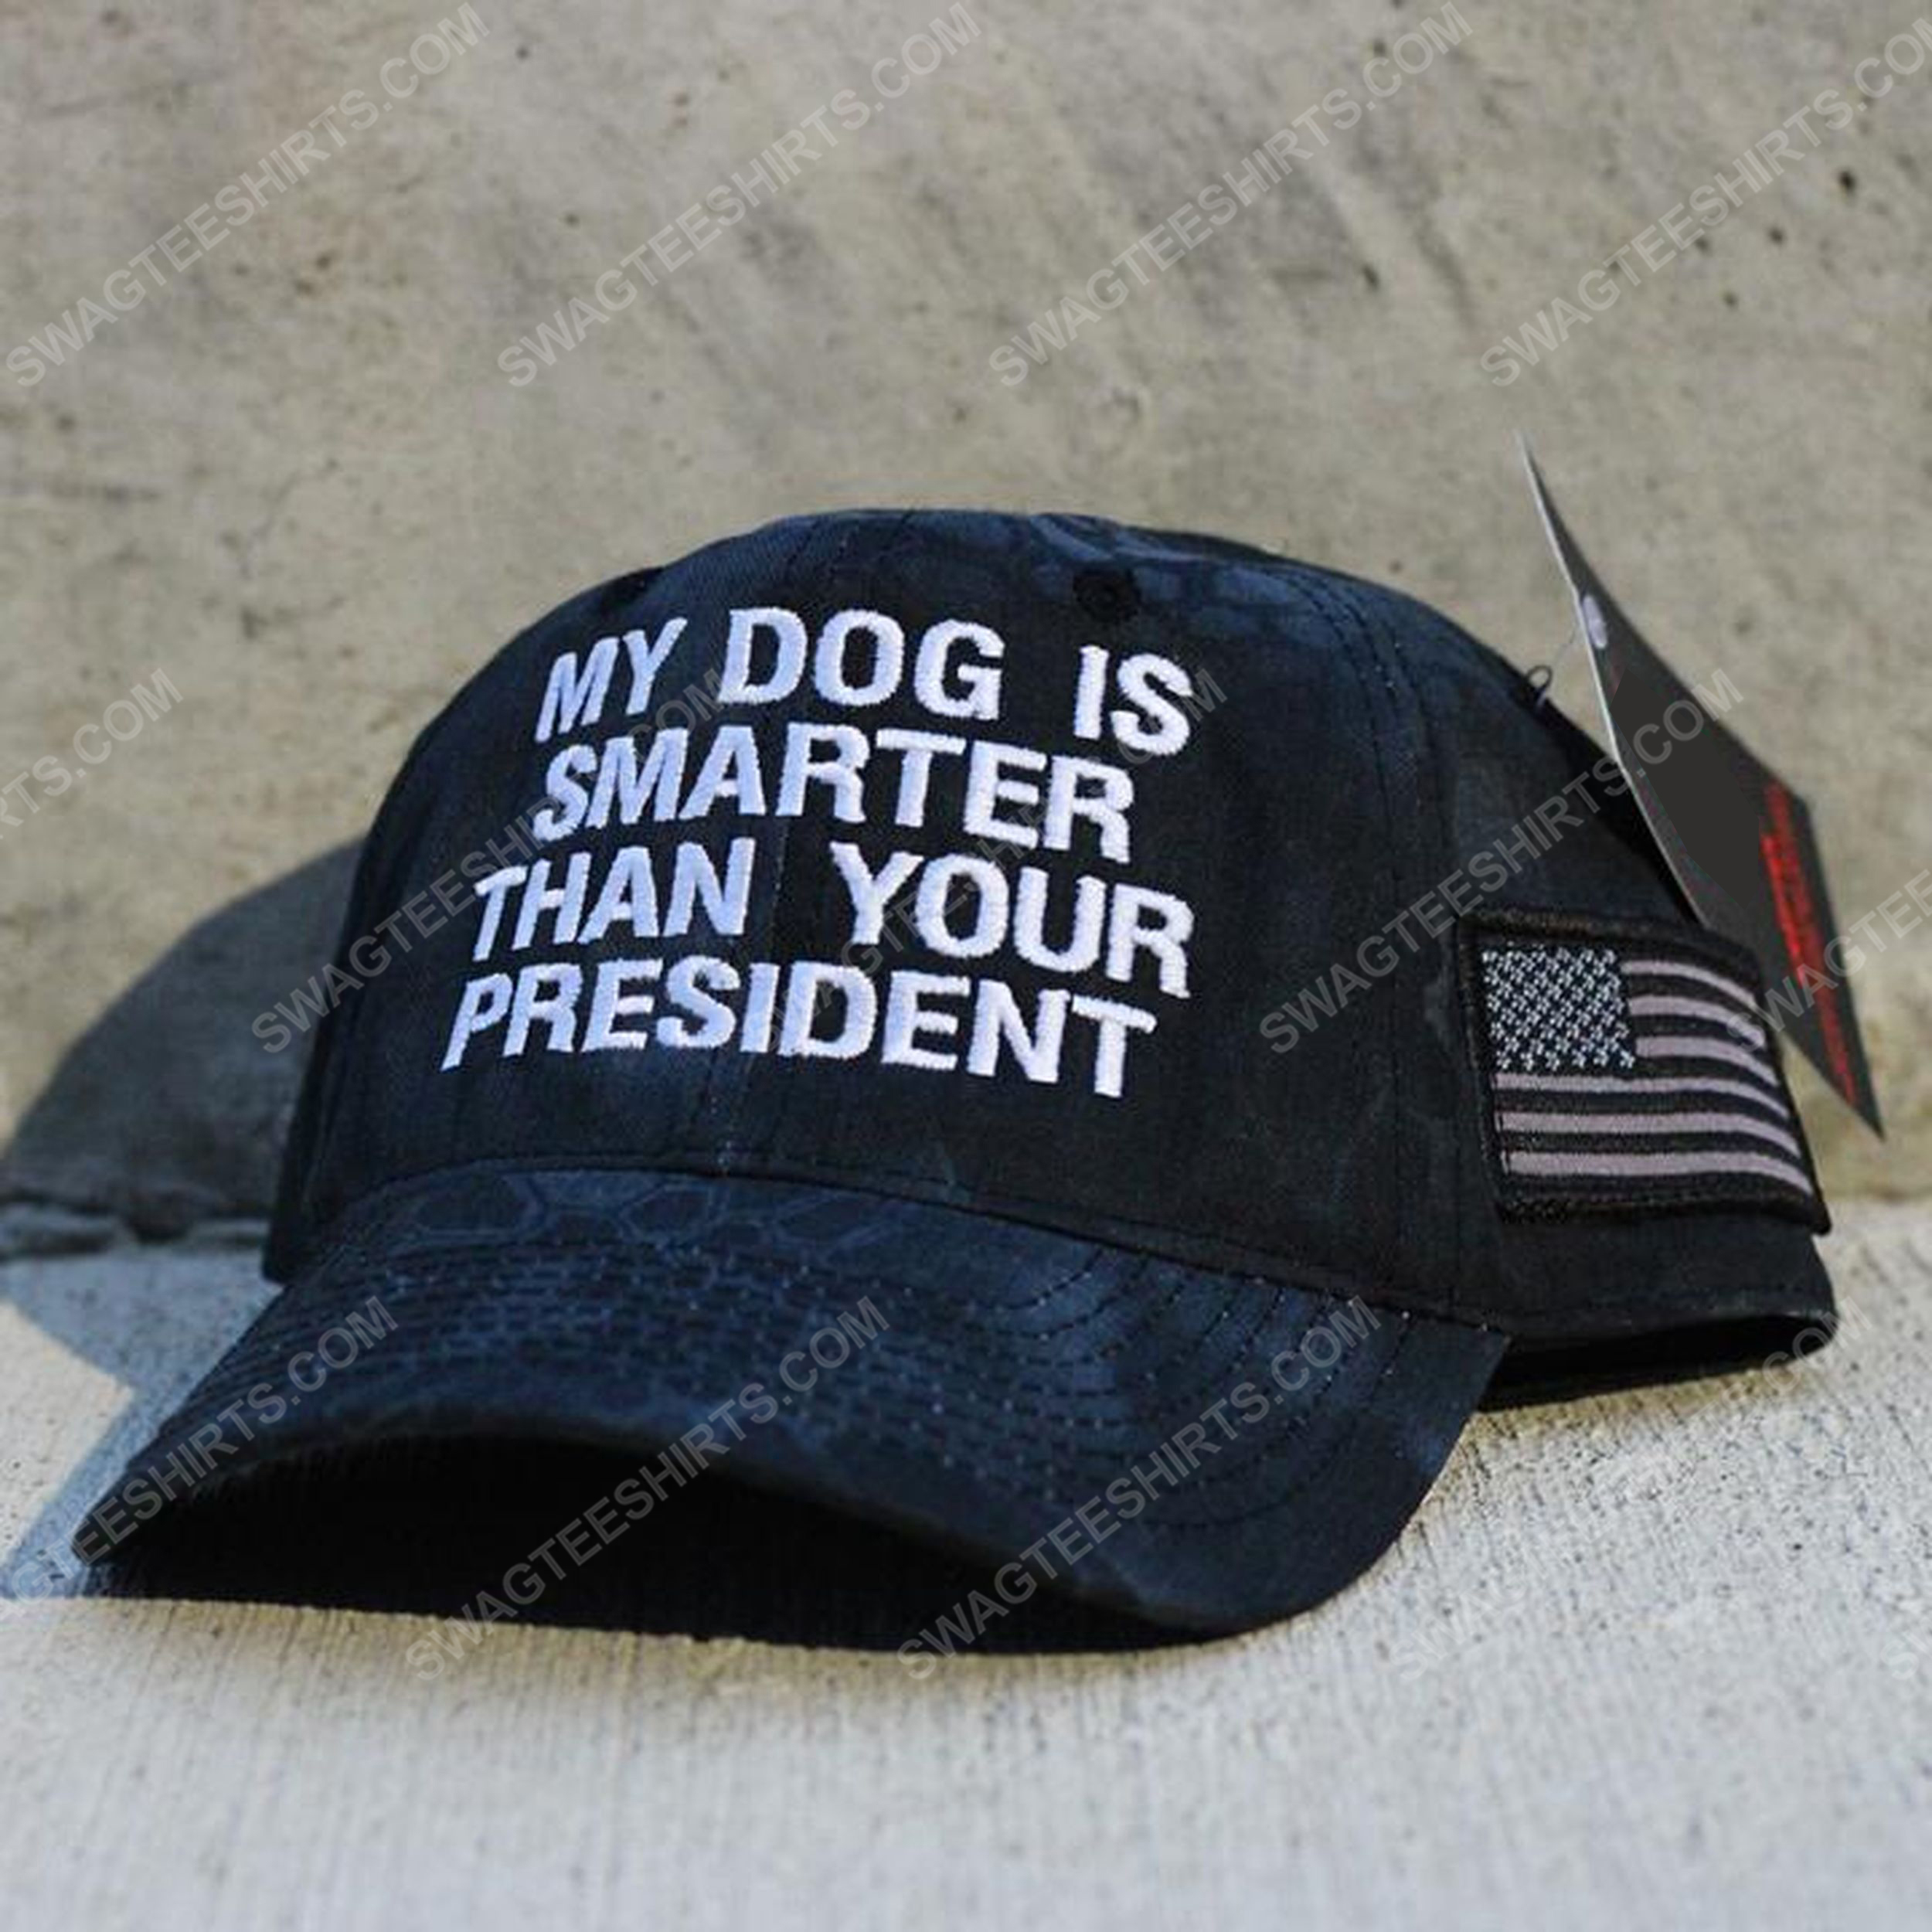 My dog is smarter than your president american flag full print classic hat 1 - Copy (2)